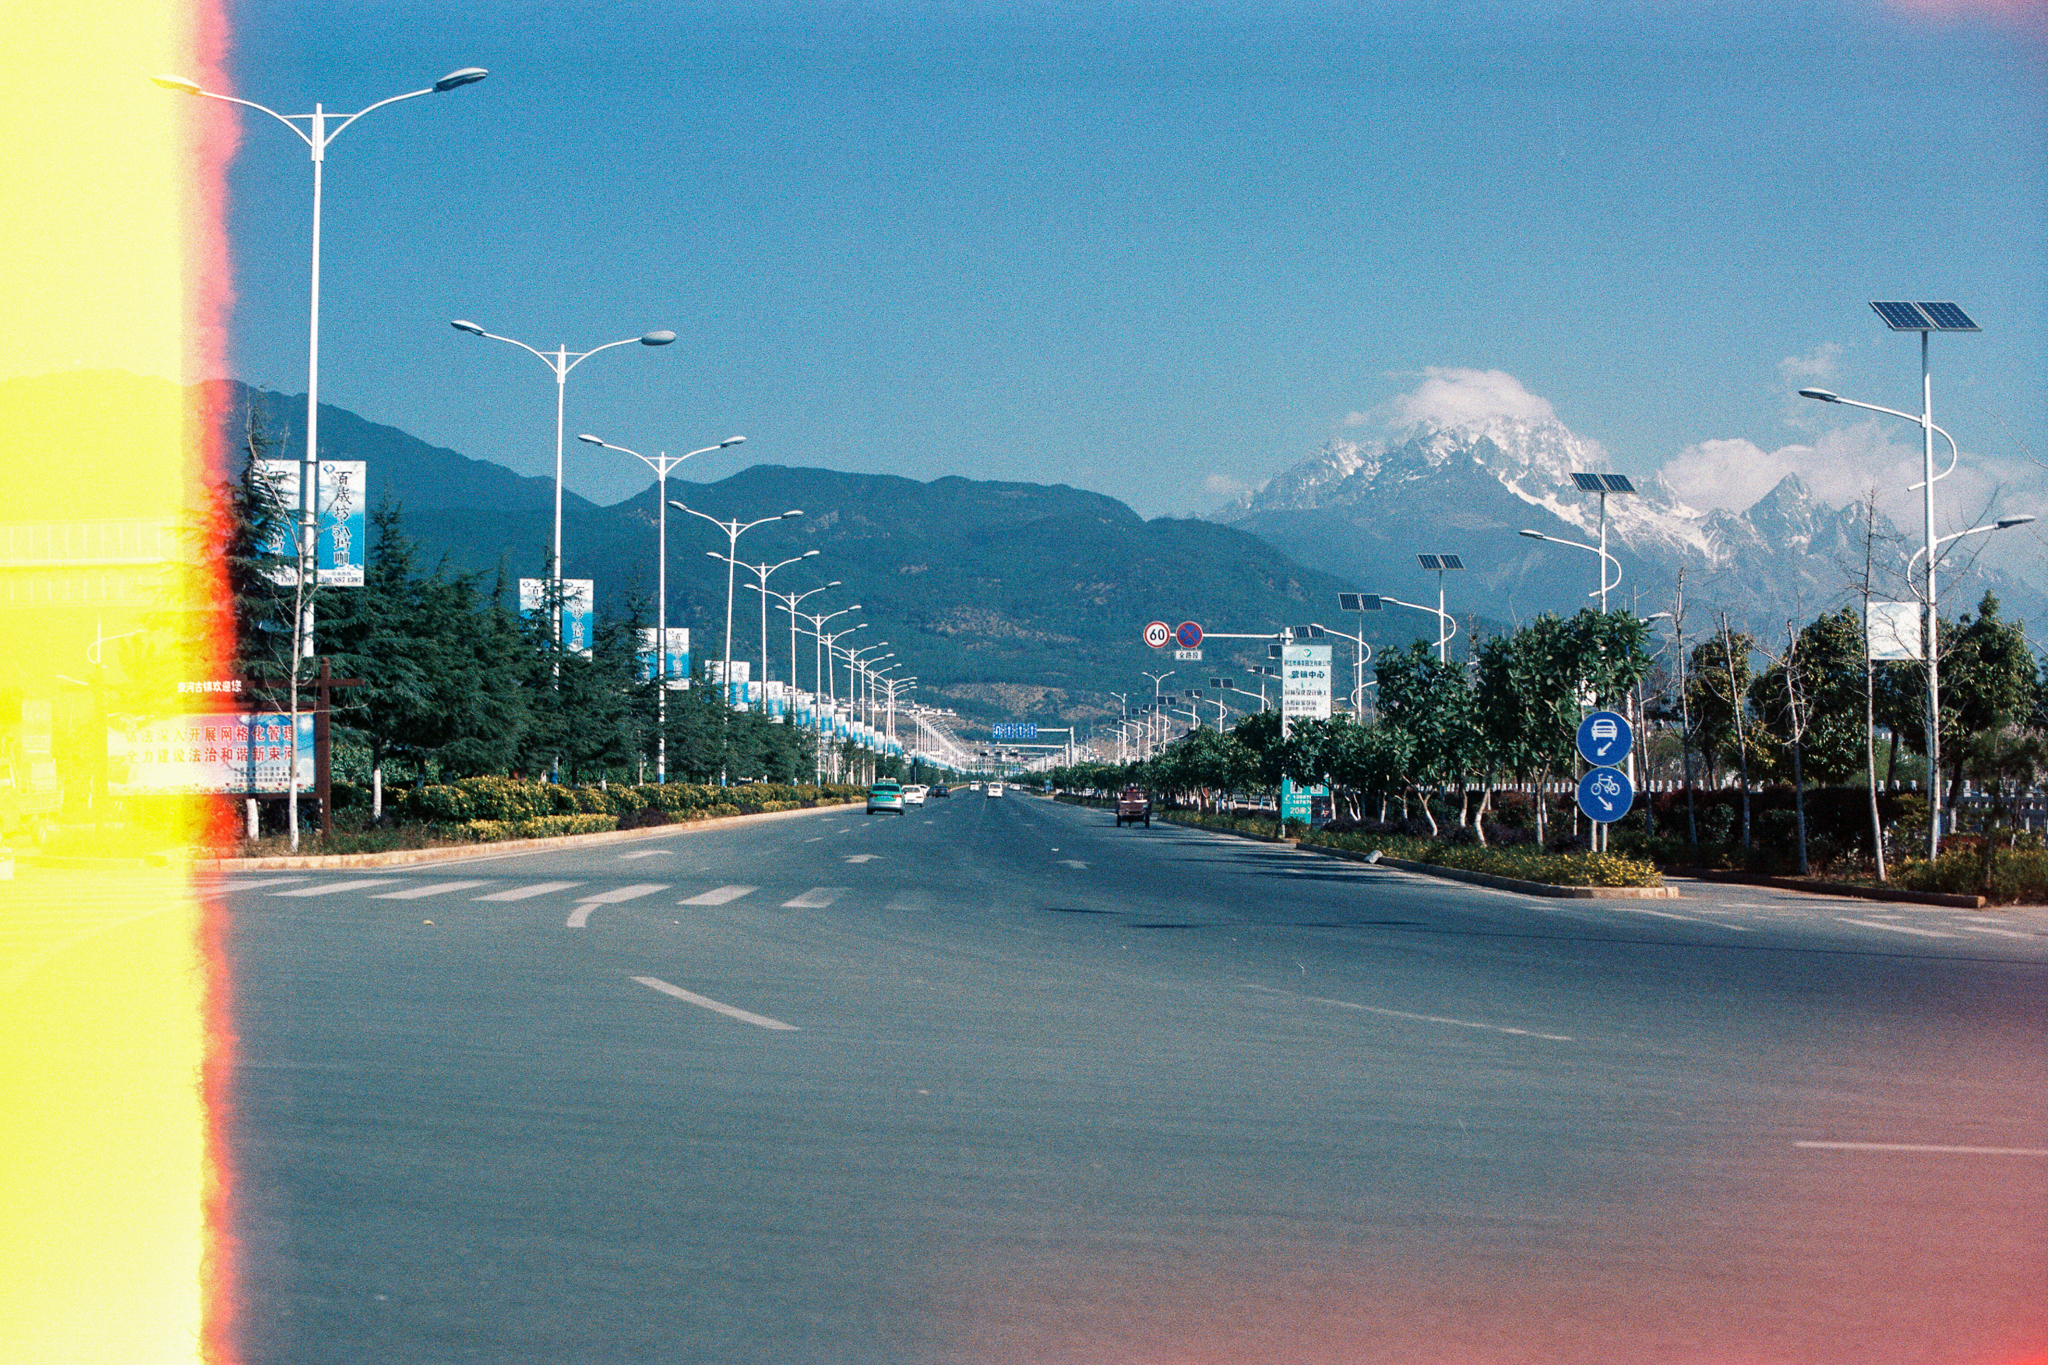 From Lijiang, the Jade Dragon Snow Mountains